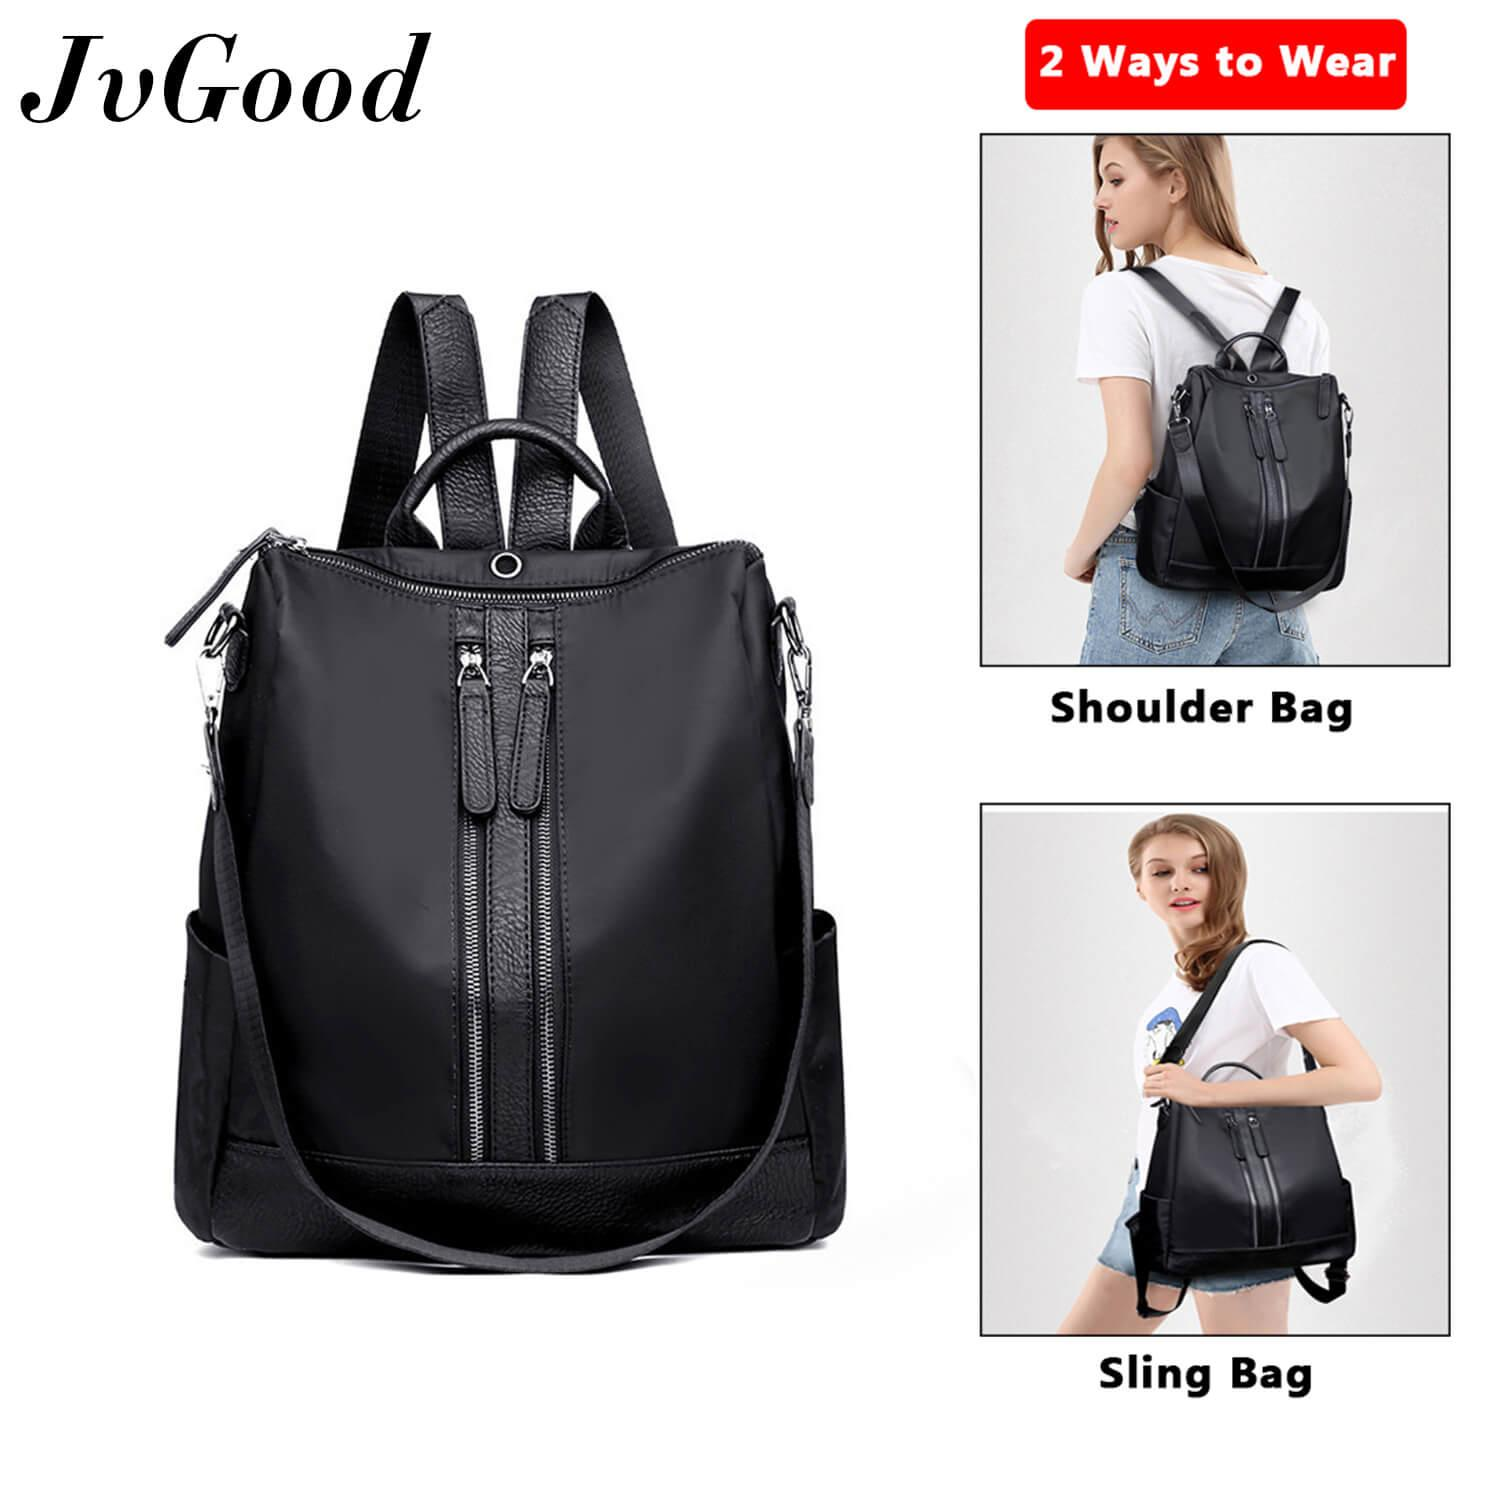 JvGood Shoulder Backpacks Women Korean Style Sling Bag  Women Bag Handbag  Waterproof Oxford Daypack Lightweight with Earphone Pore